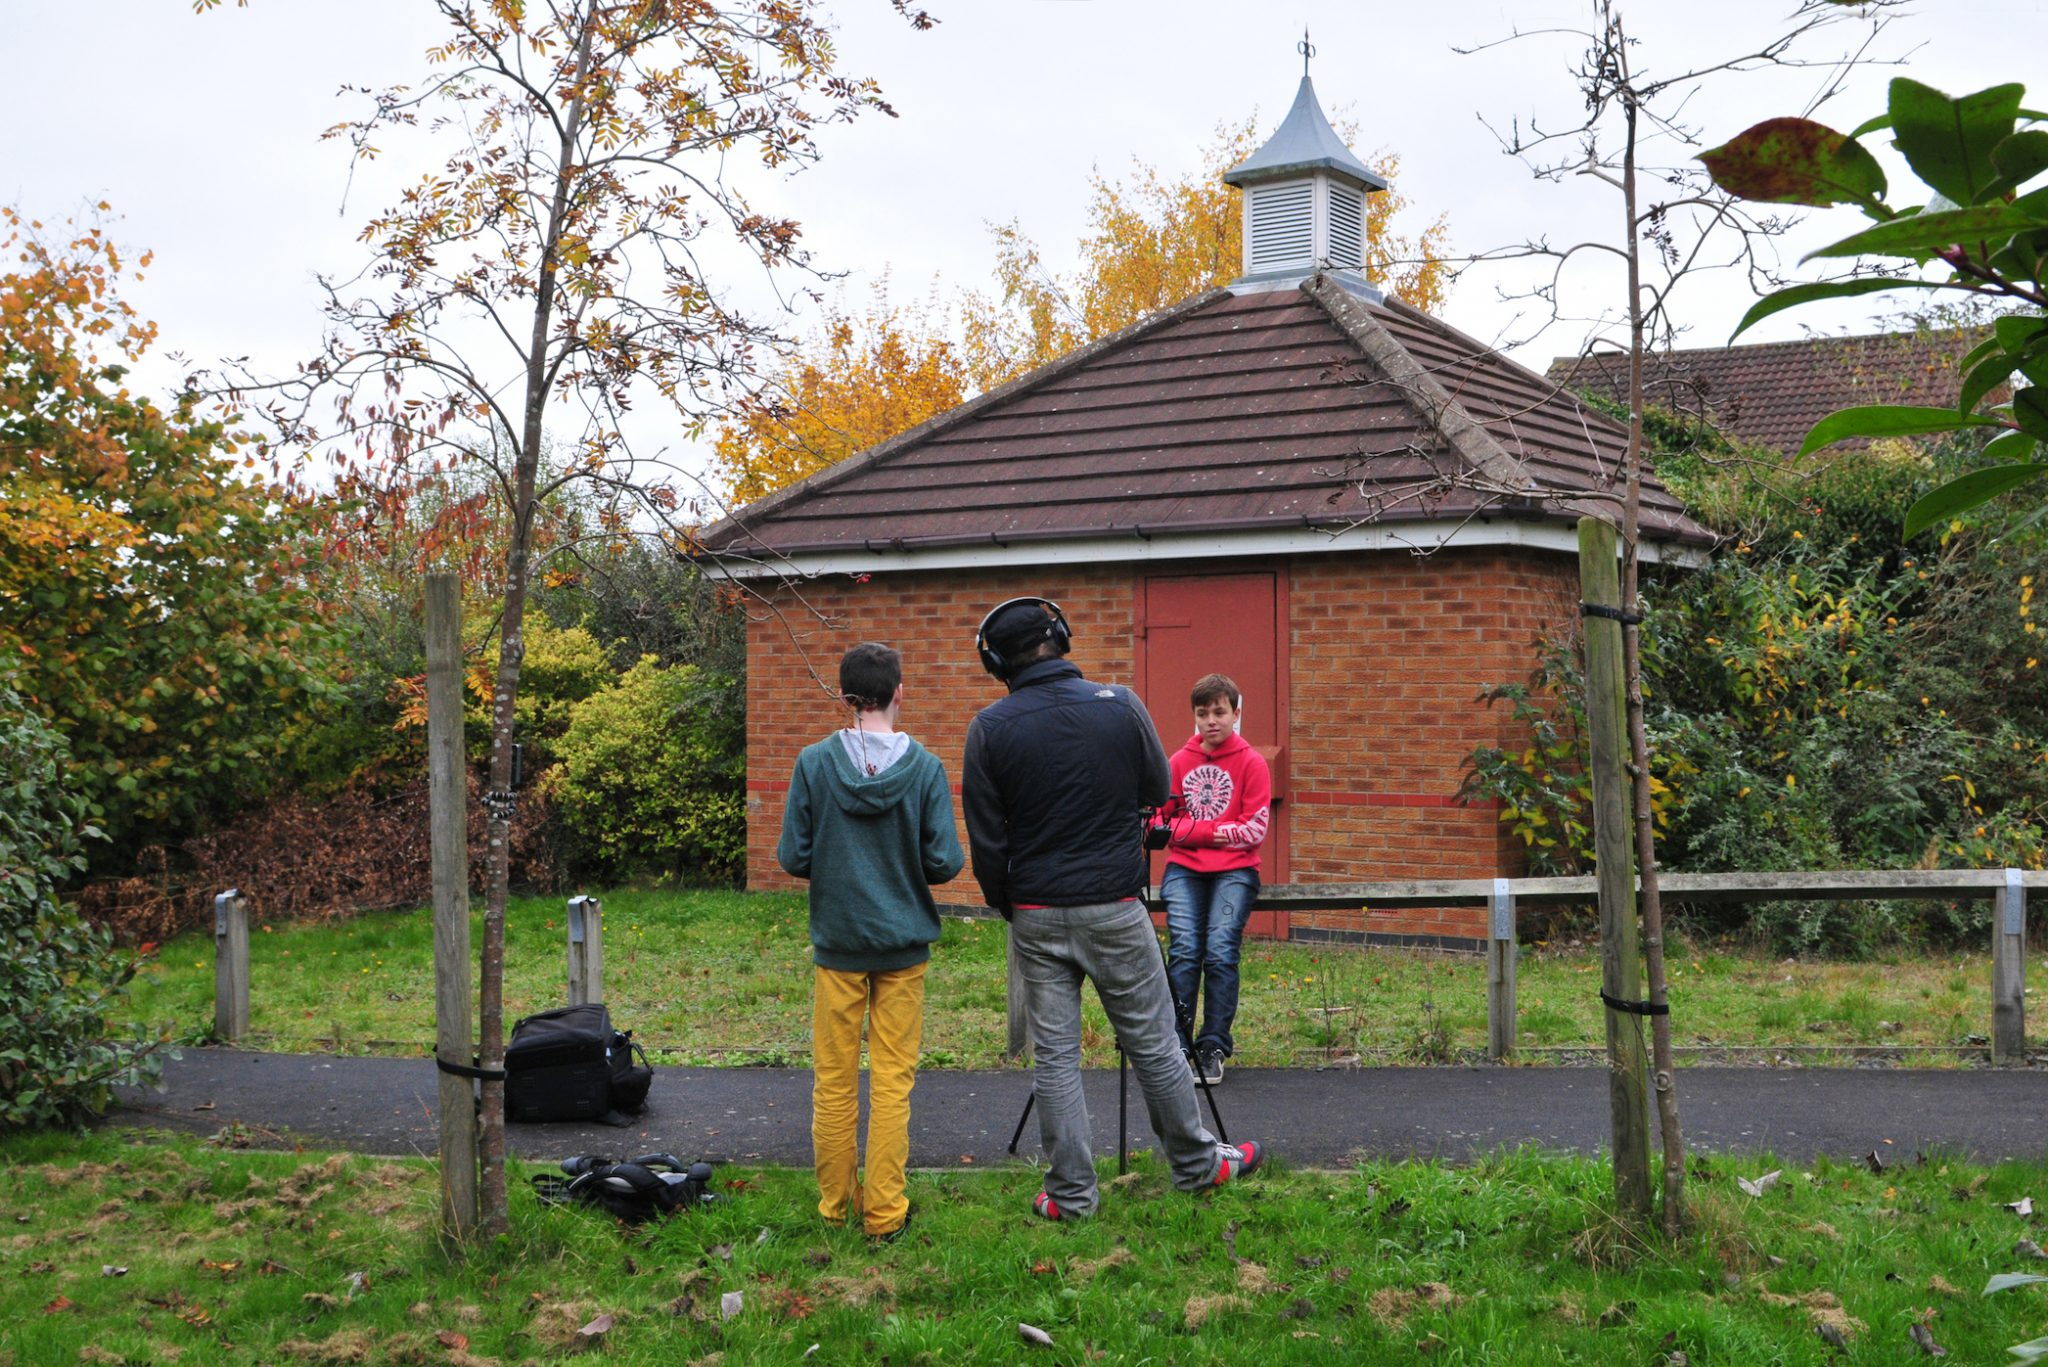 Photo of two people interviewing a young person in Donsithorpe